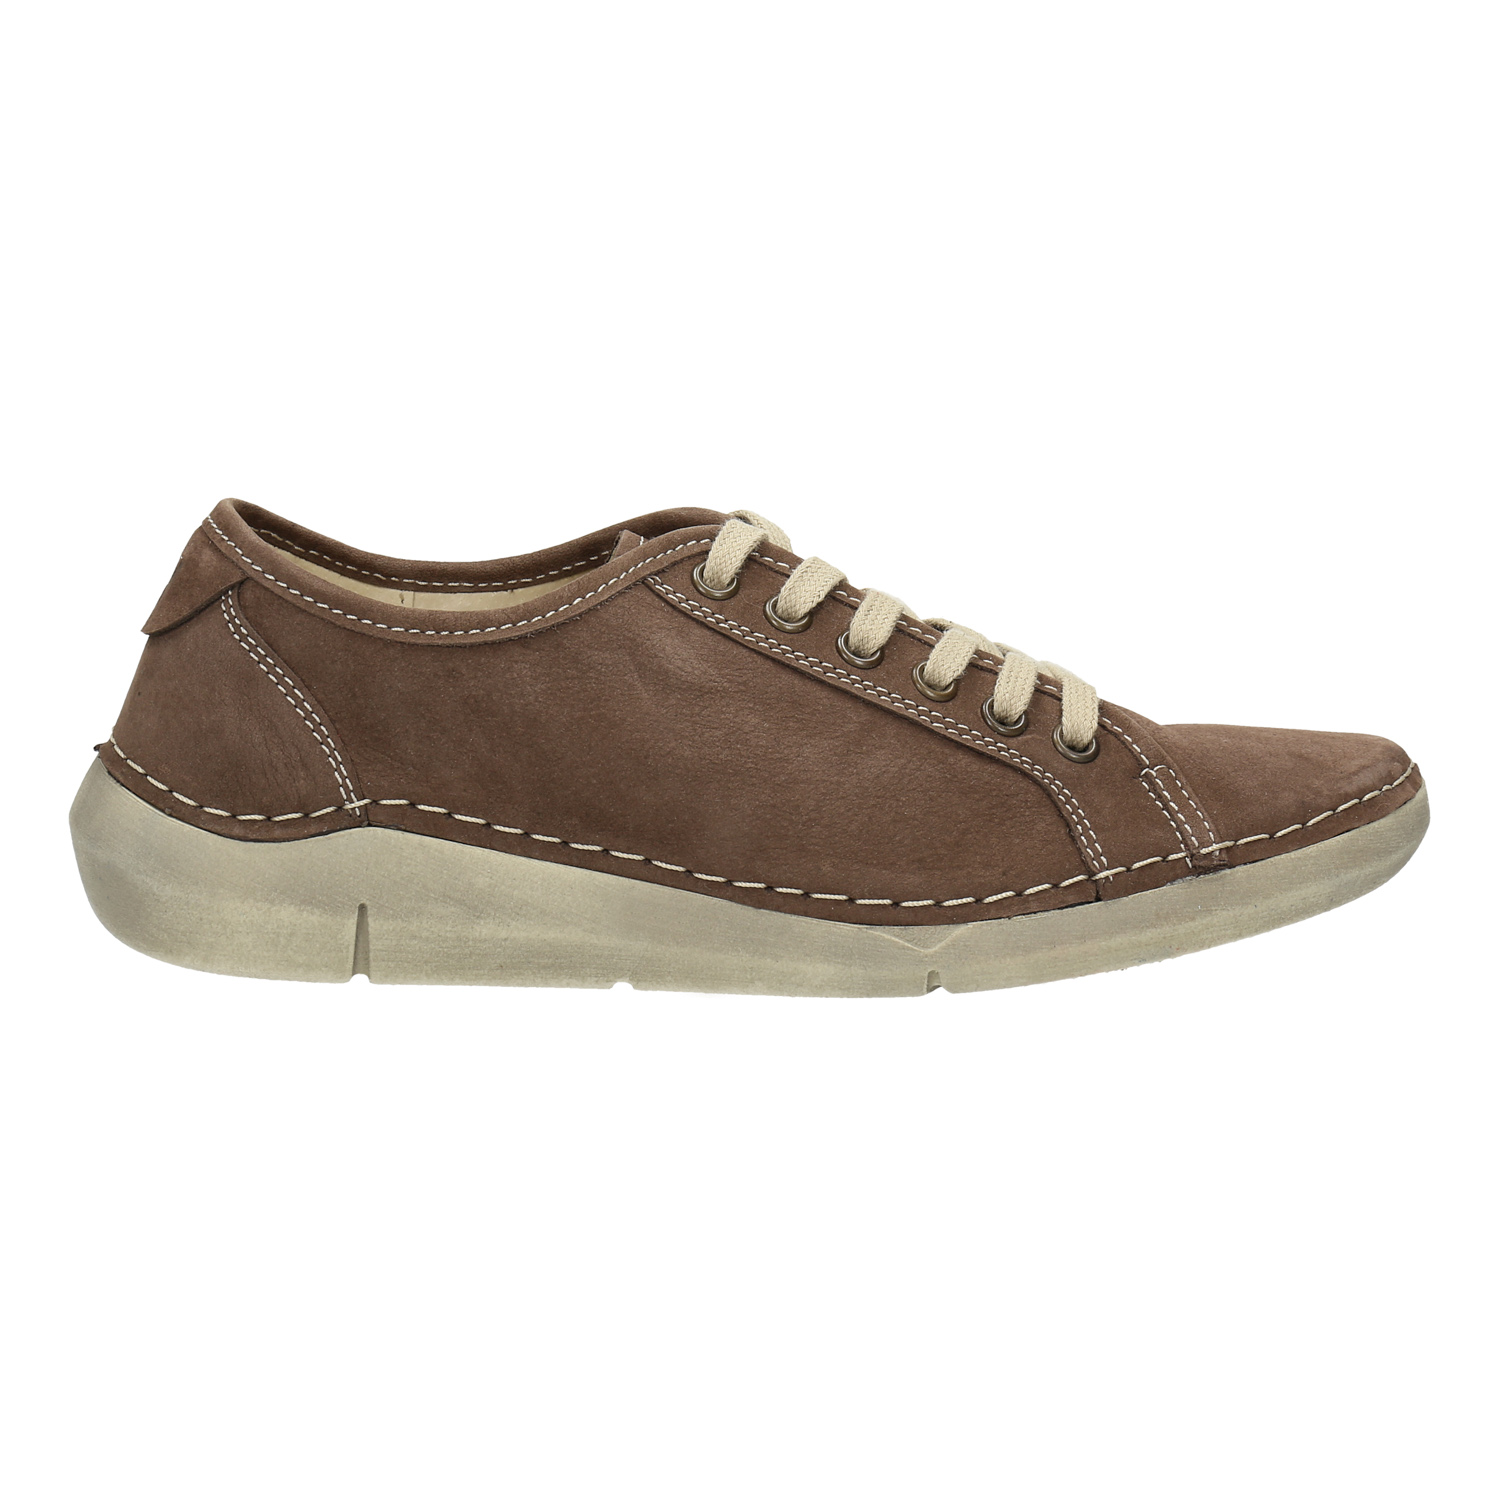 Weinbrenner Casual leather shoes for ladies Sneakers | Bata